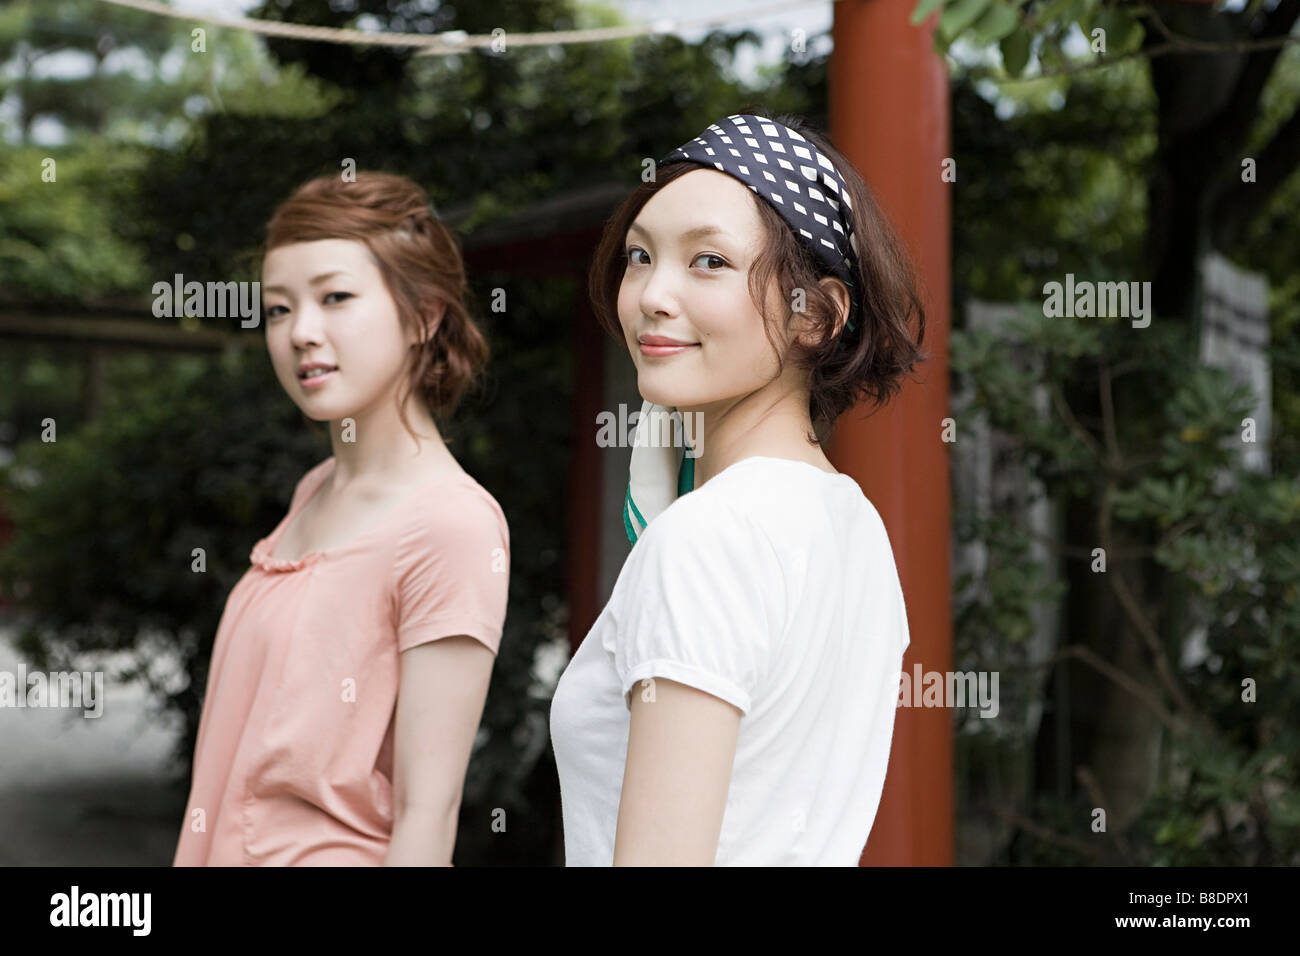 Young women at shrine - Stock Image